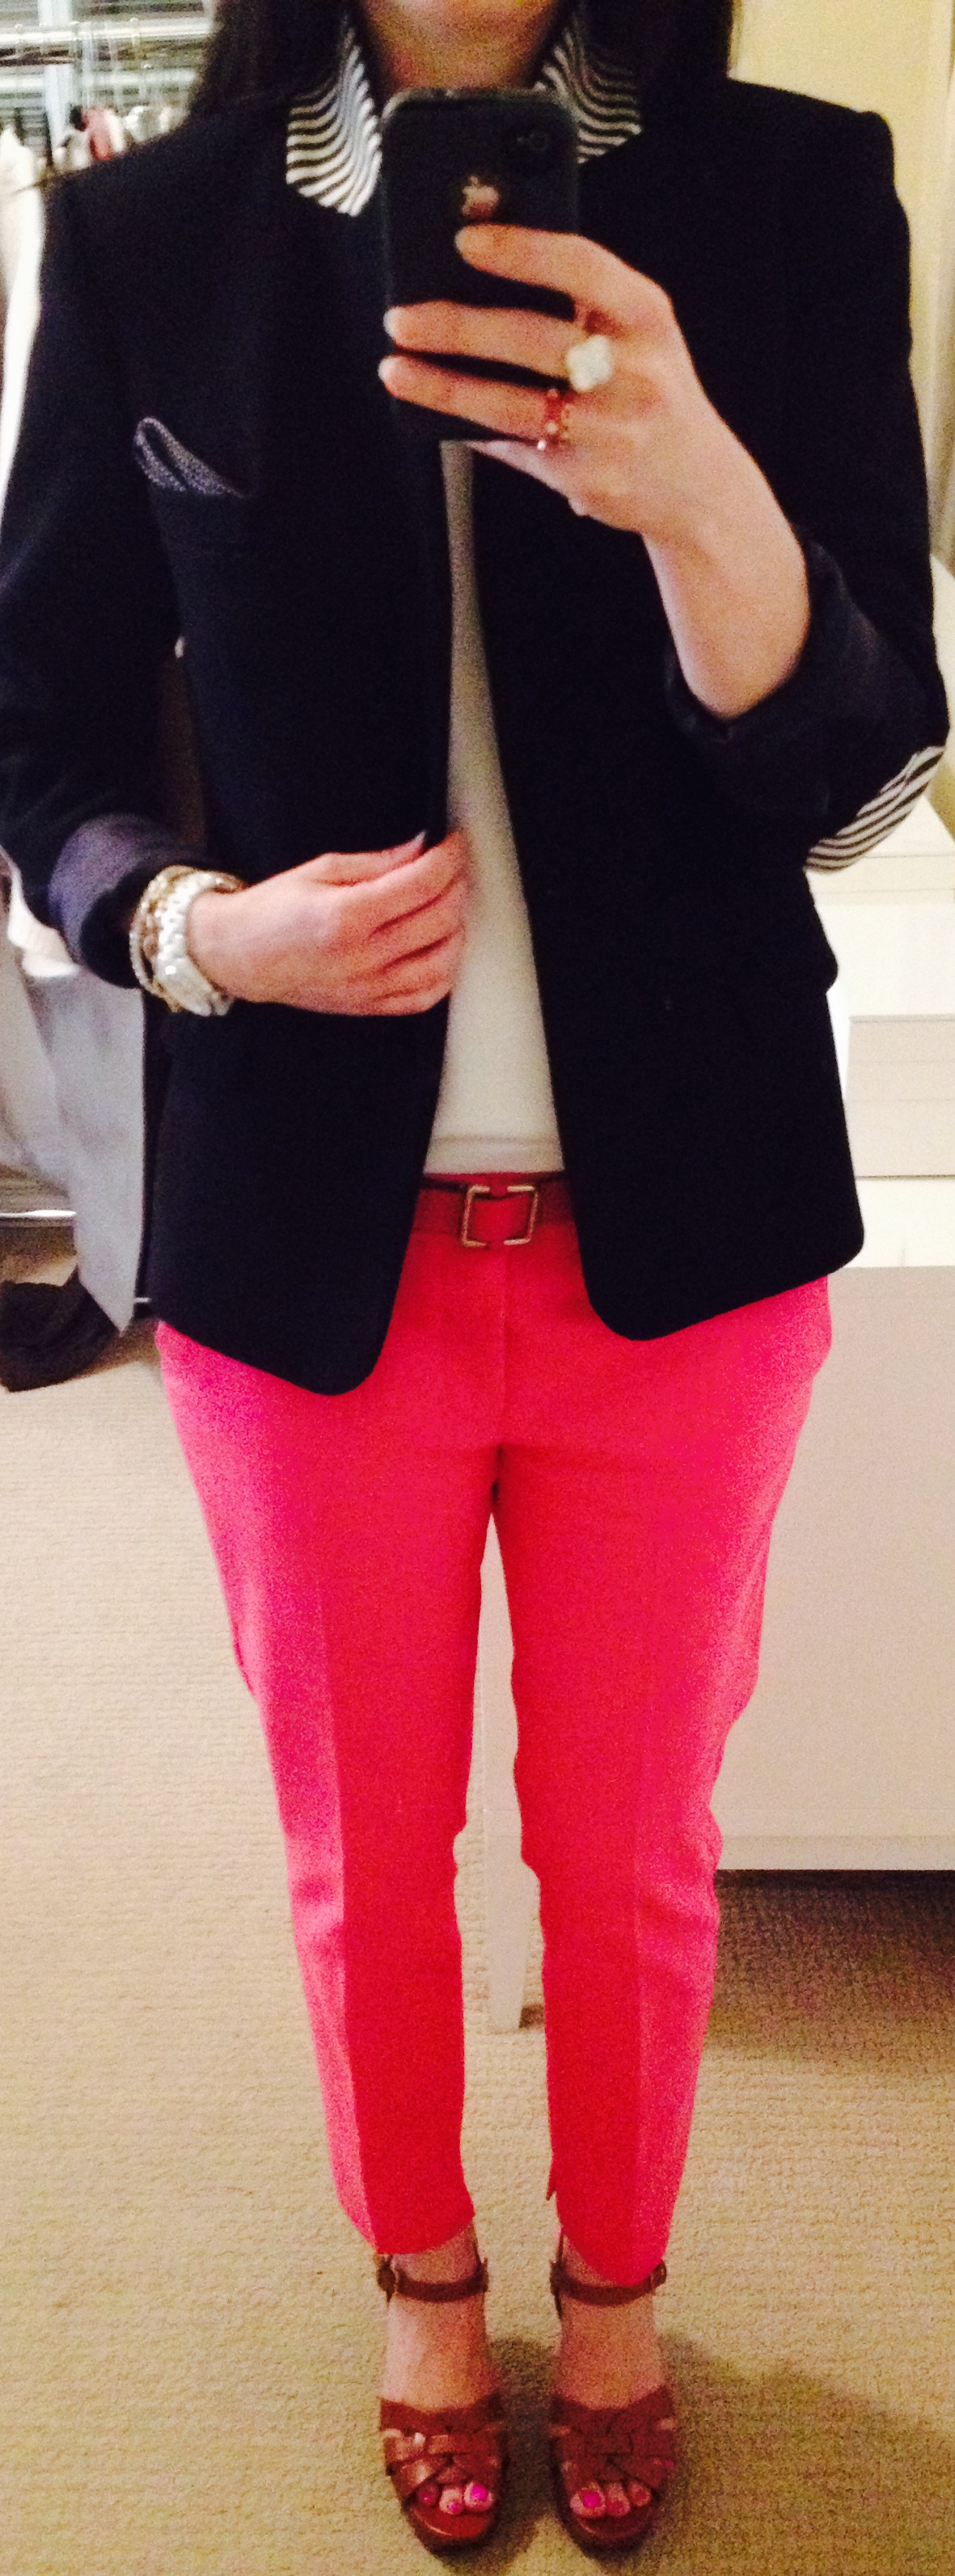 May 12, Nautical Blazer in Blue and Pink